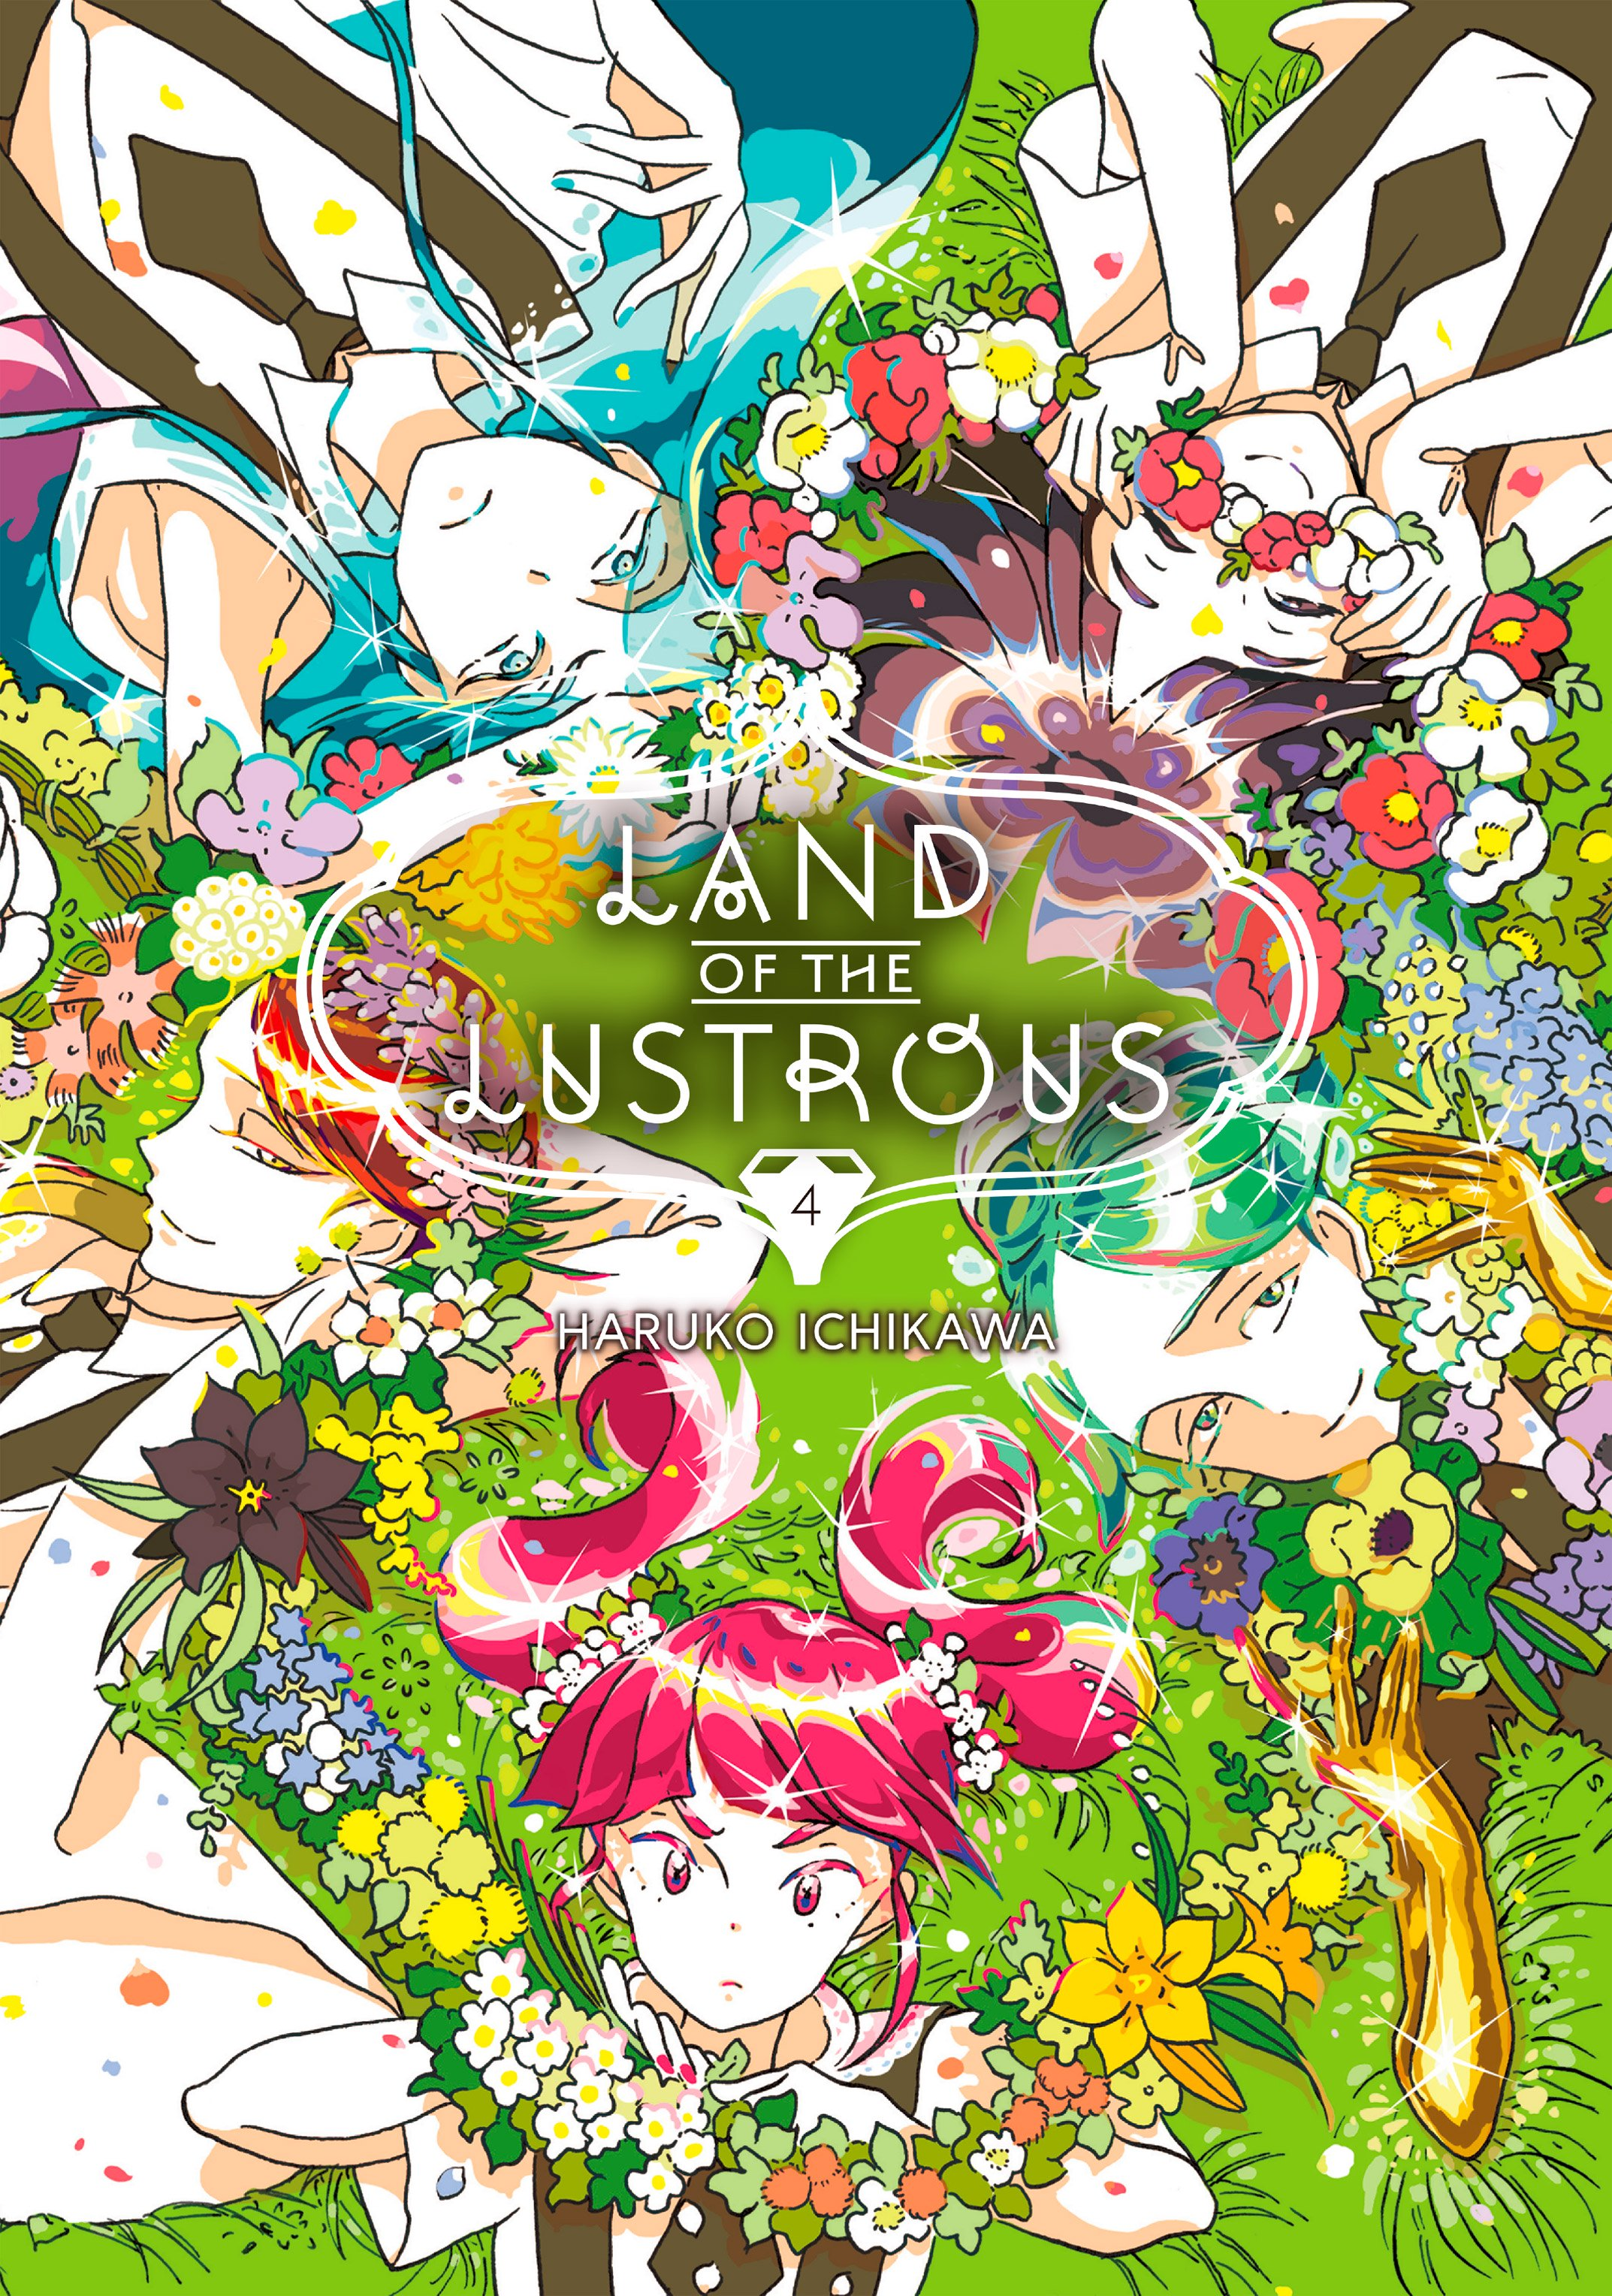 Read Land of the Lustrous - All Chapters | Manga Rock